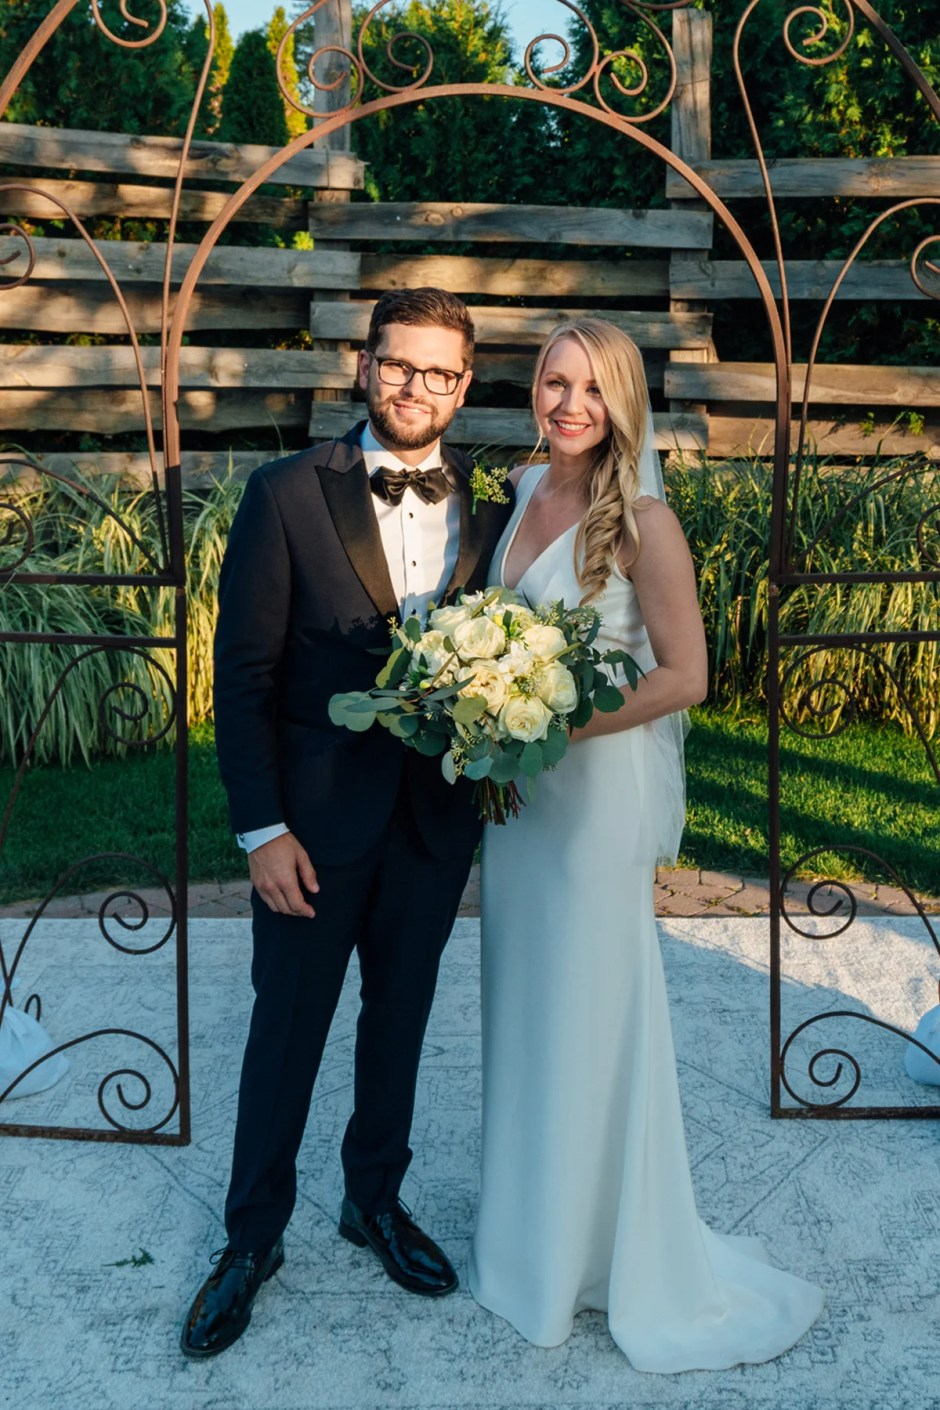 An Unusually Hot Greenhouse Wedding | The Black Tux Blog